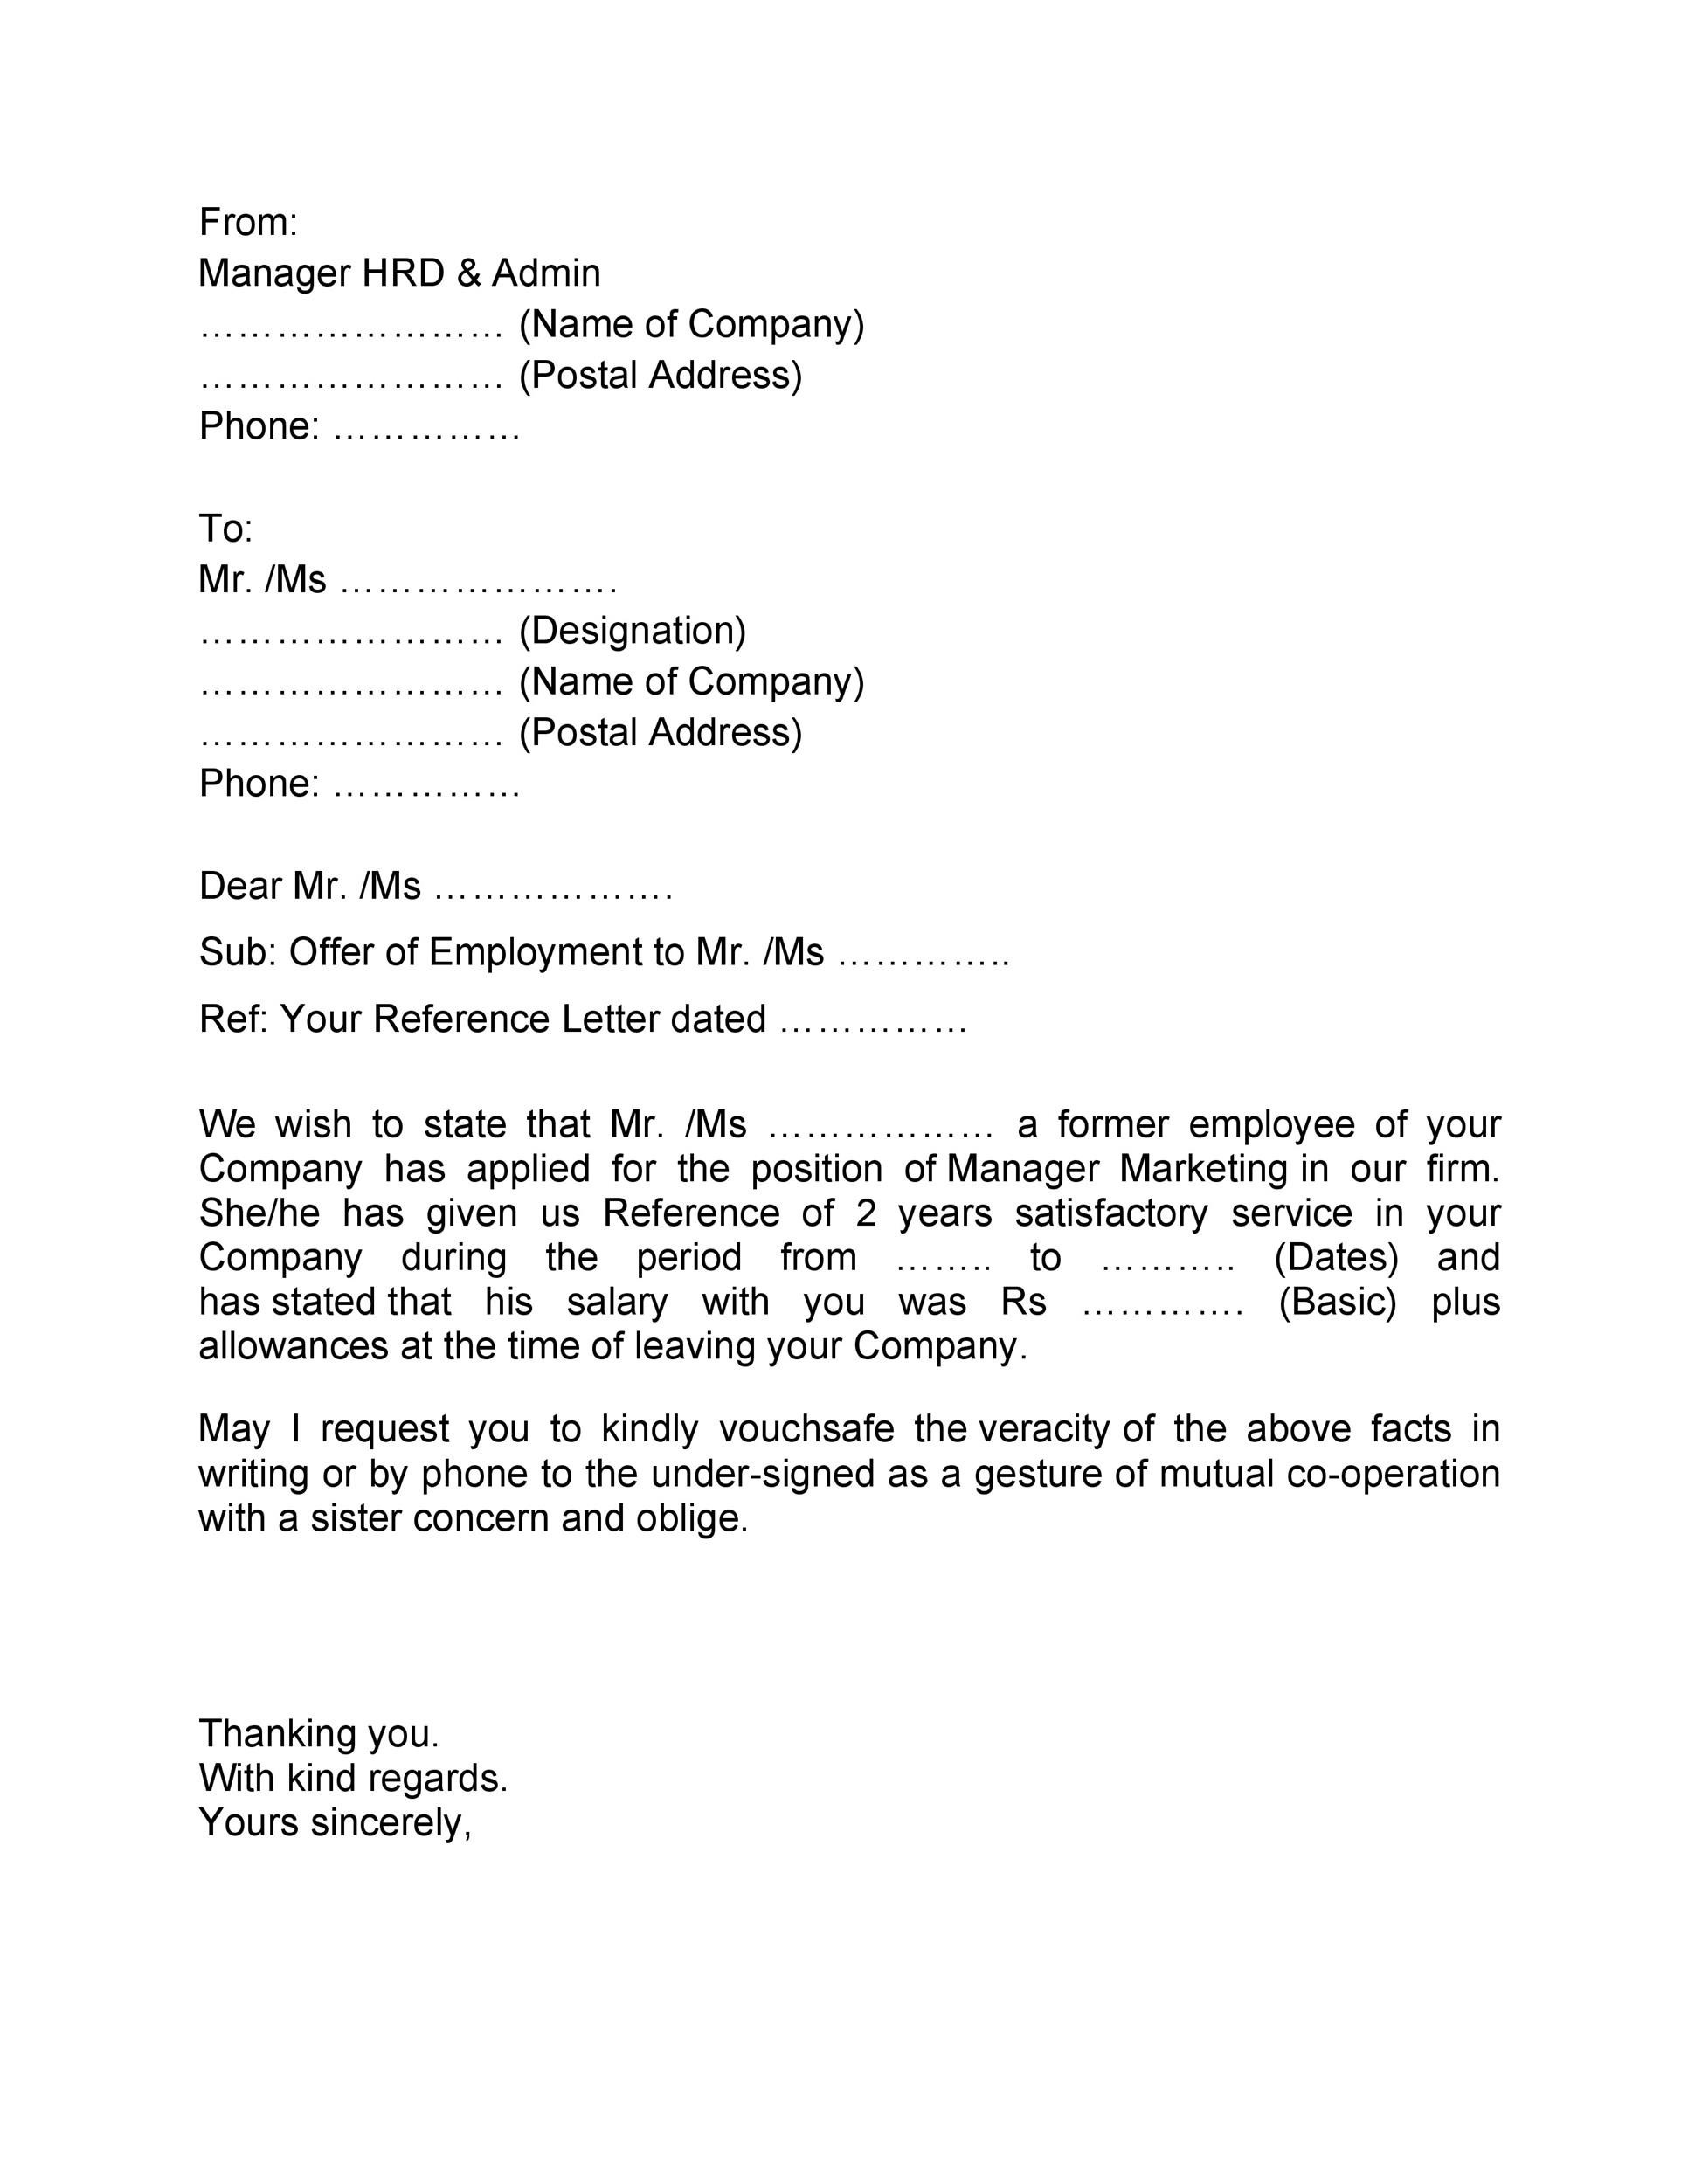 Proof of employment letter 36